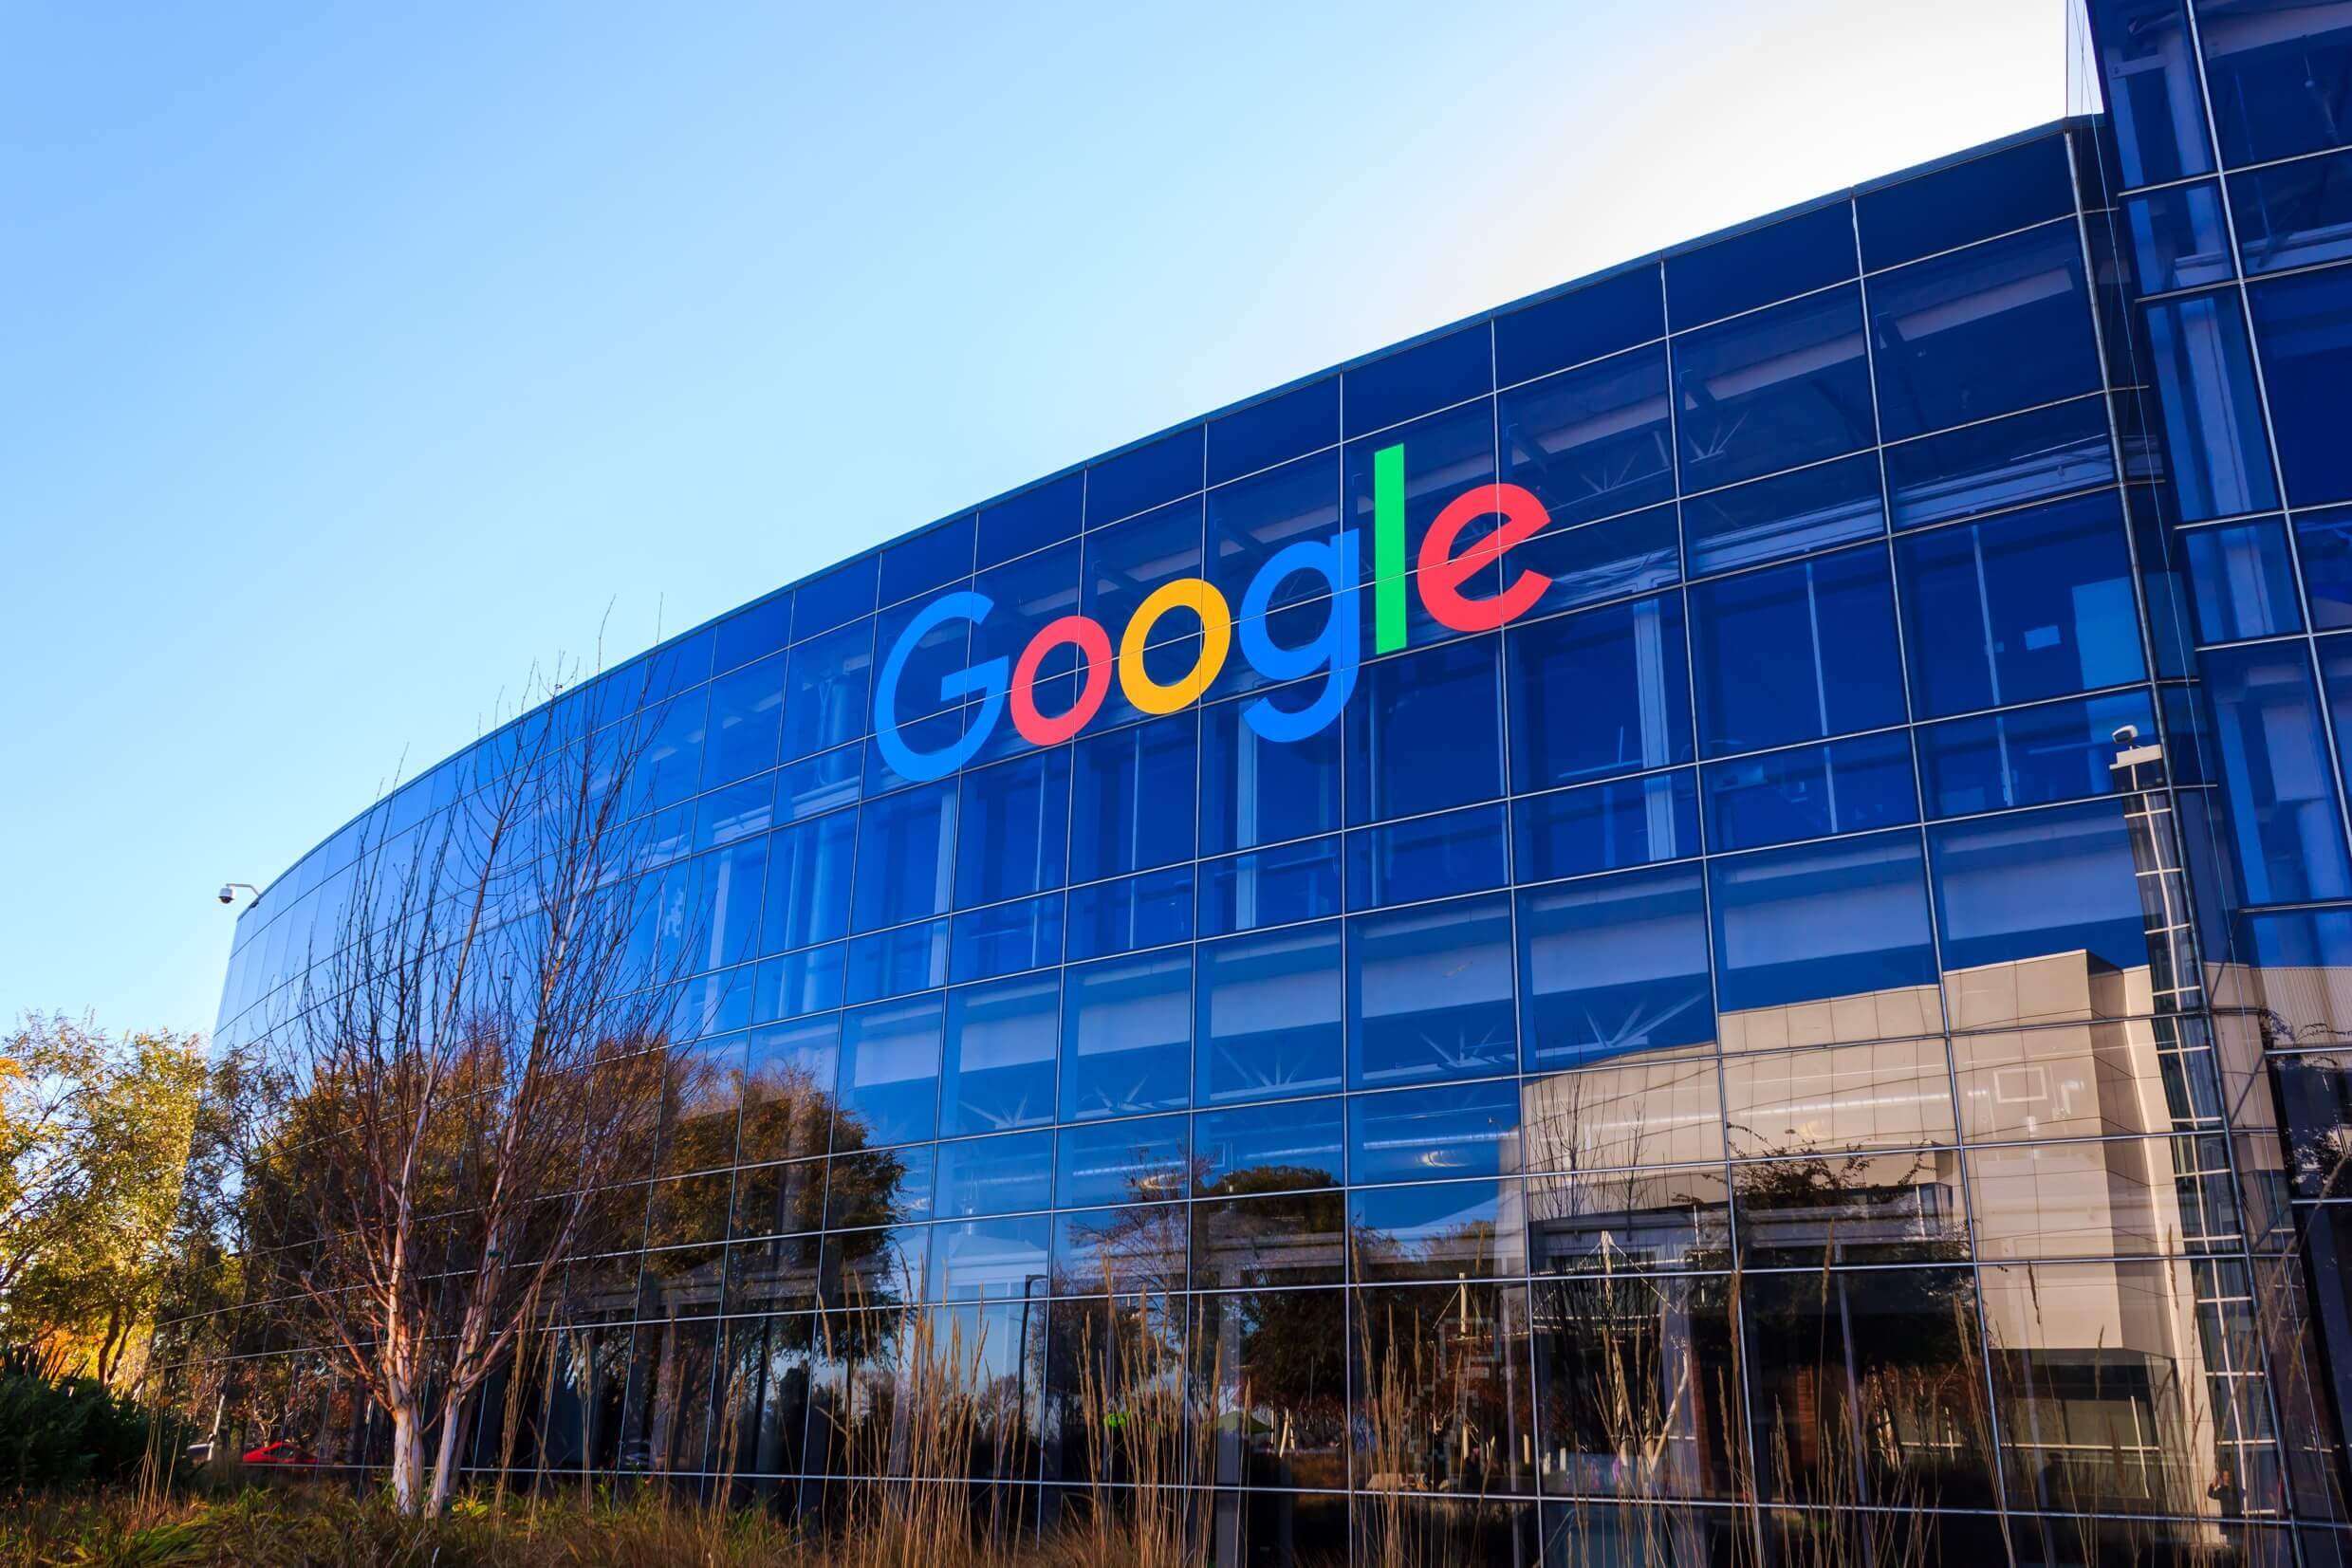 Google fires one staffer and suspends two others to reportedly stem media leaks